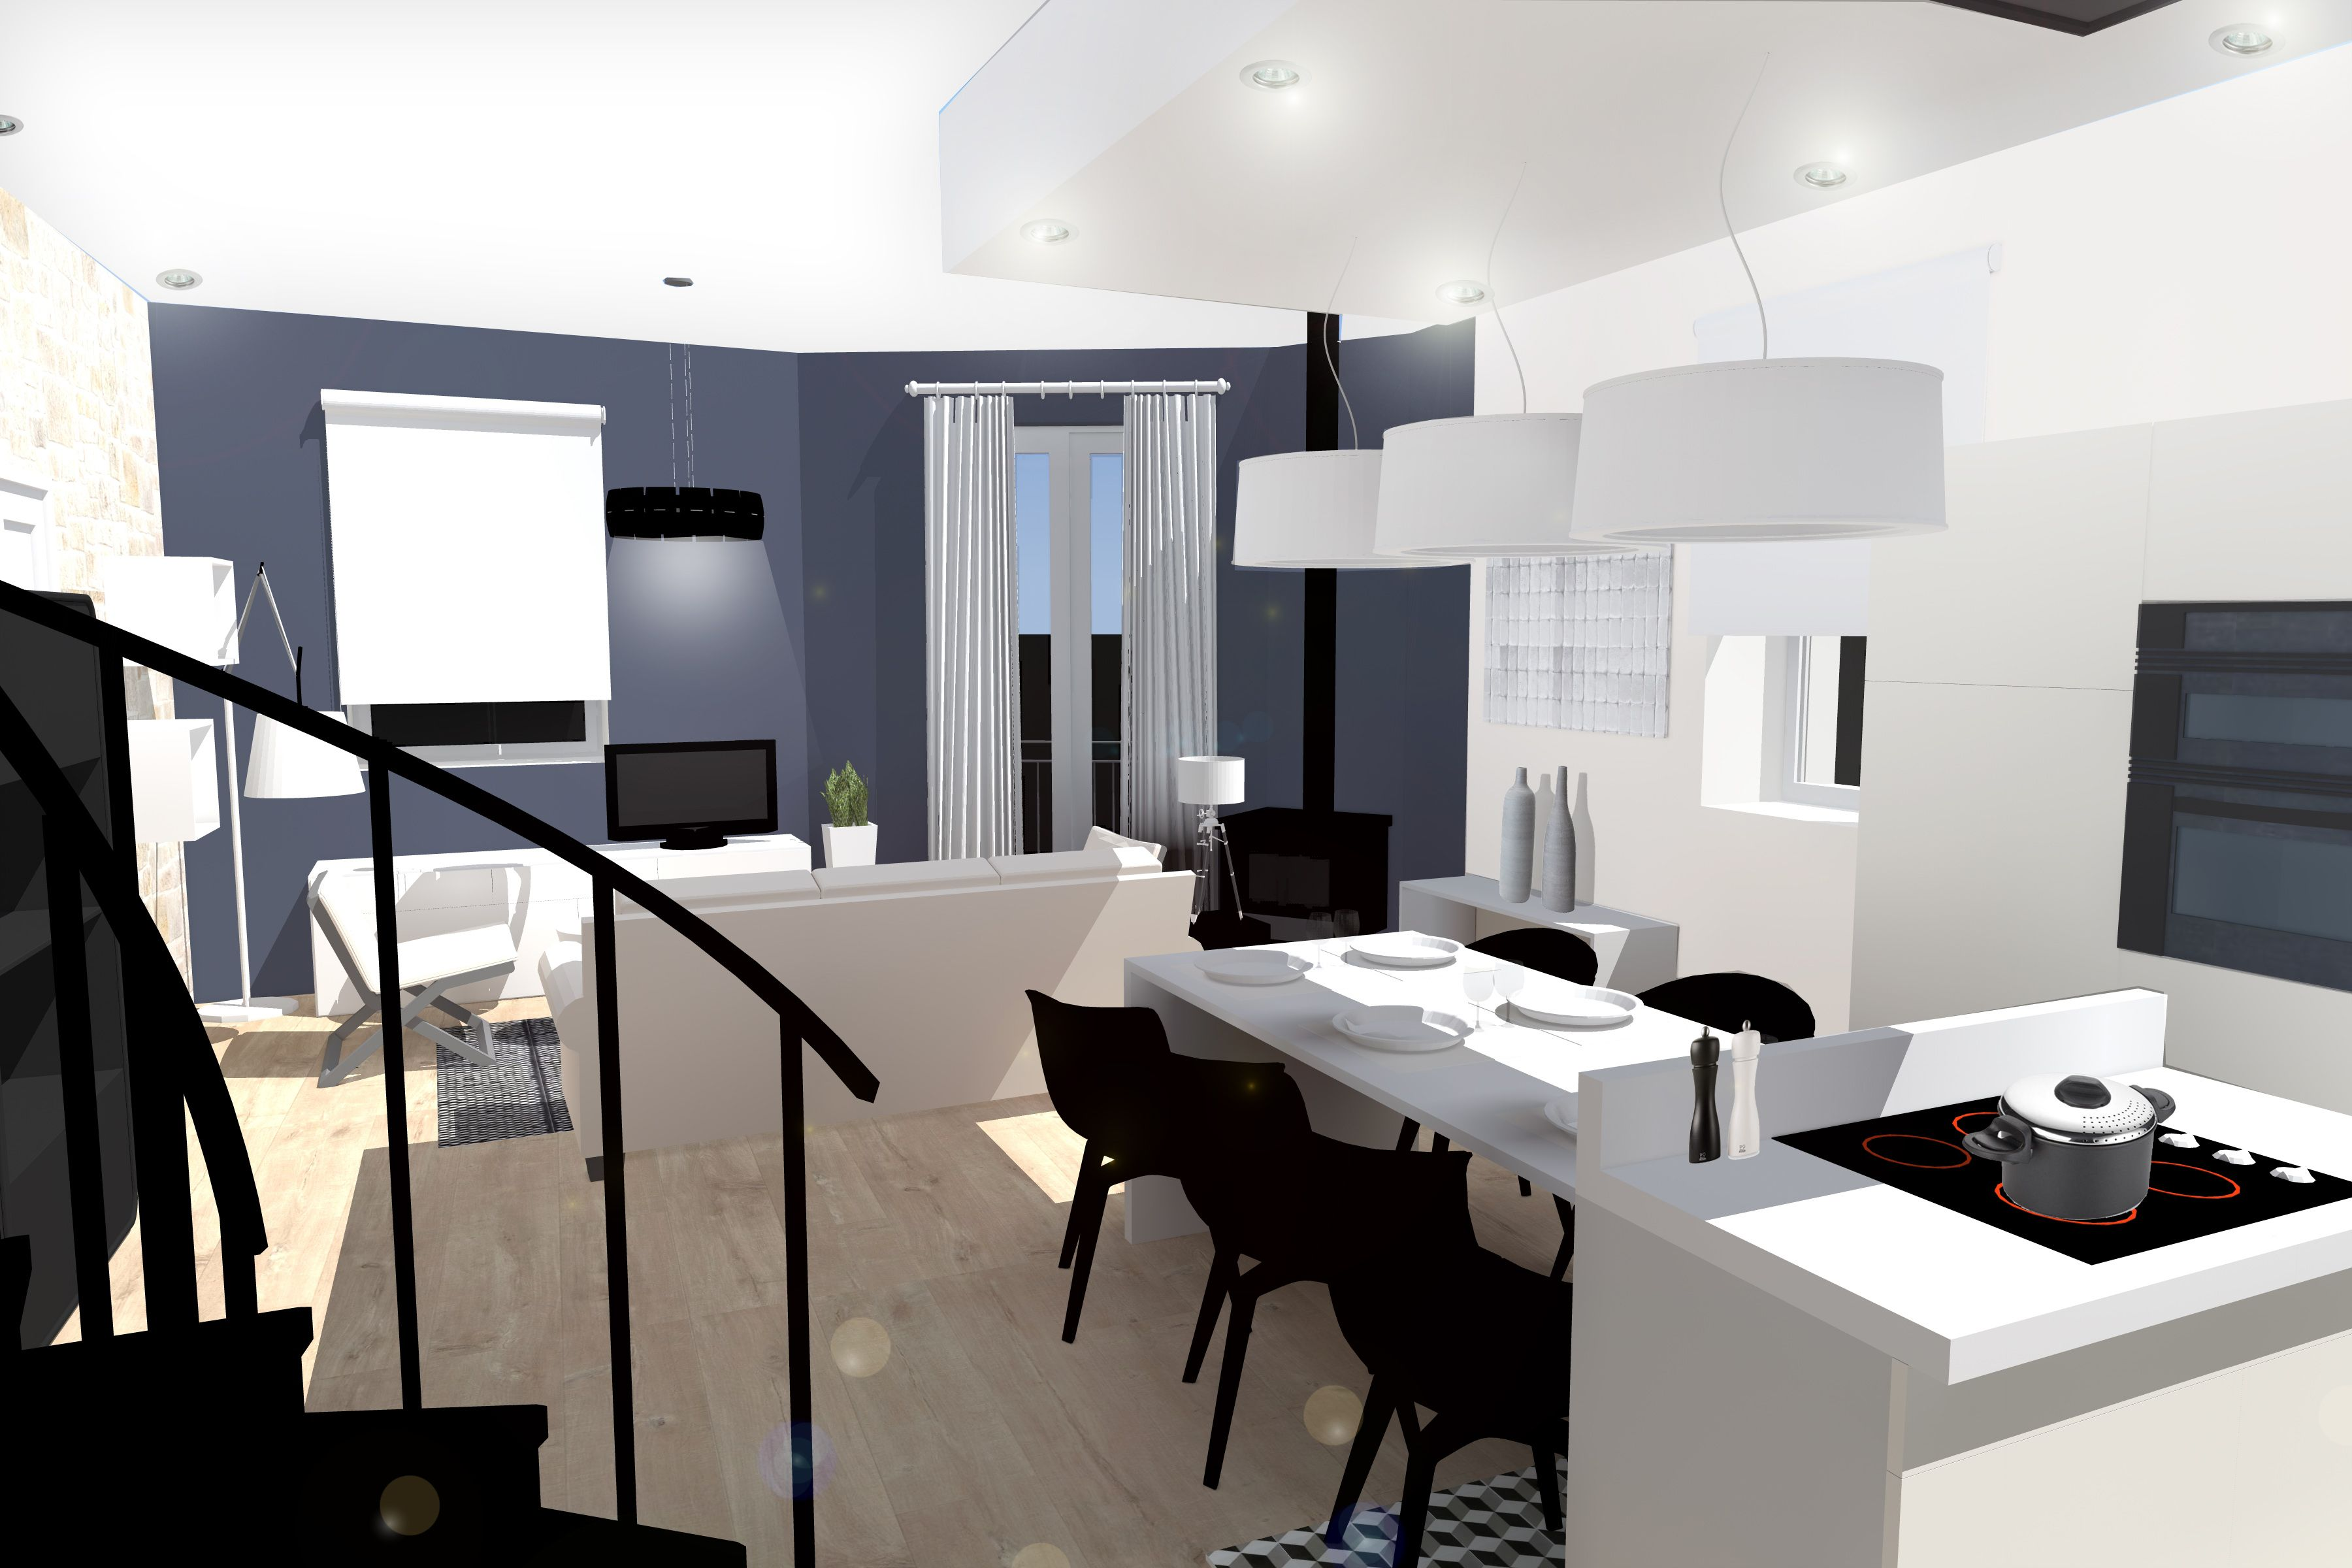 Appartement esprit loft am nagement et d coration par for Decoration interieure cuisine americaine